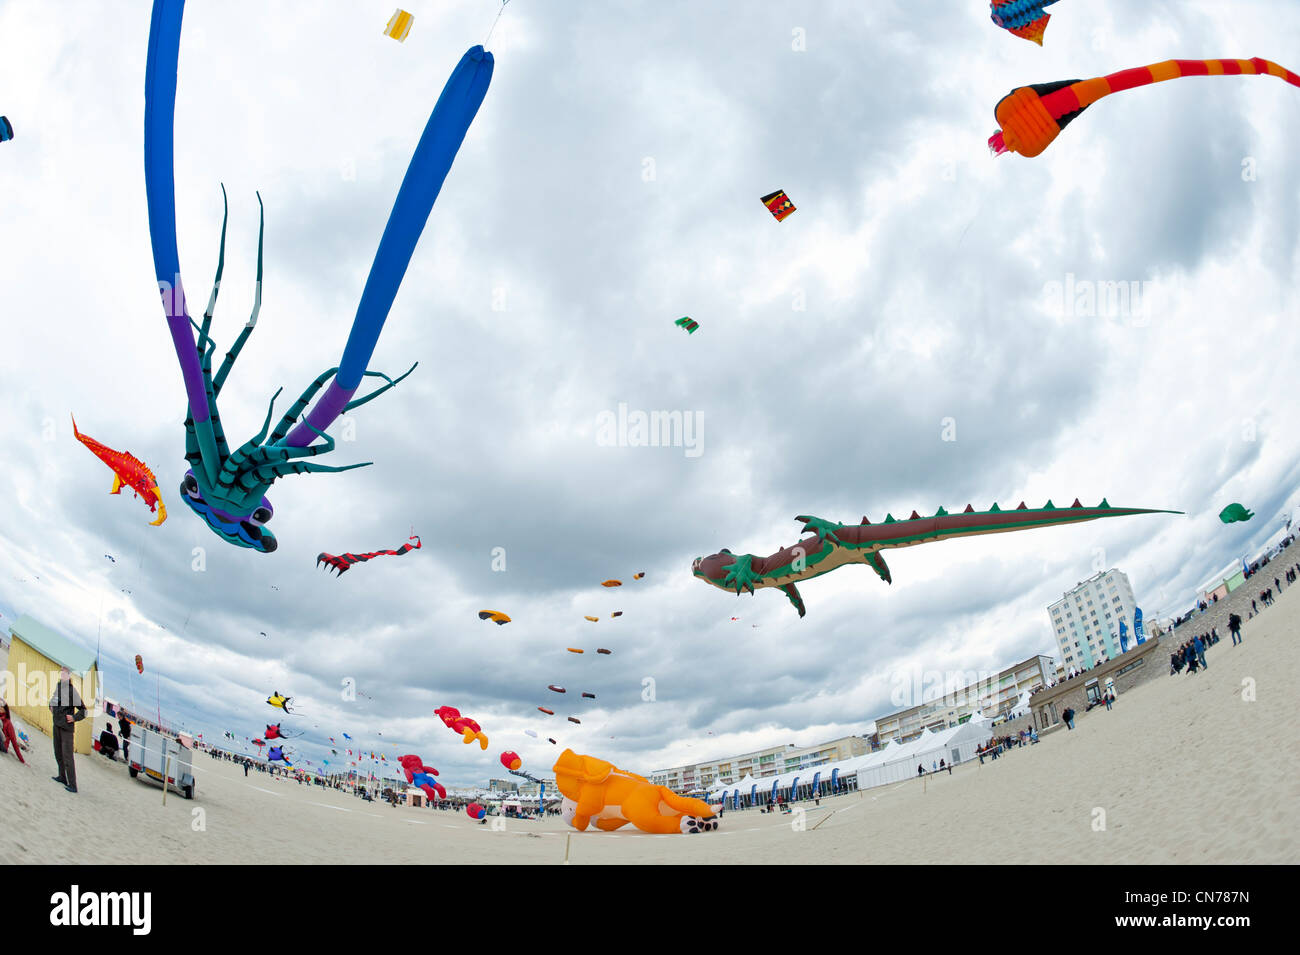 berck sur mer international kite festival cerfs volants stock photo royalty free image. Black Bedroom Furniture Sets. Home Design Ideas